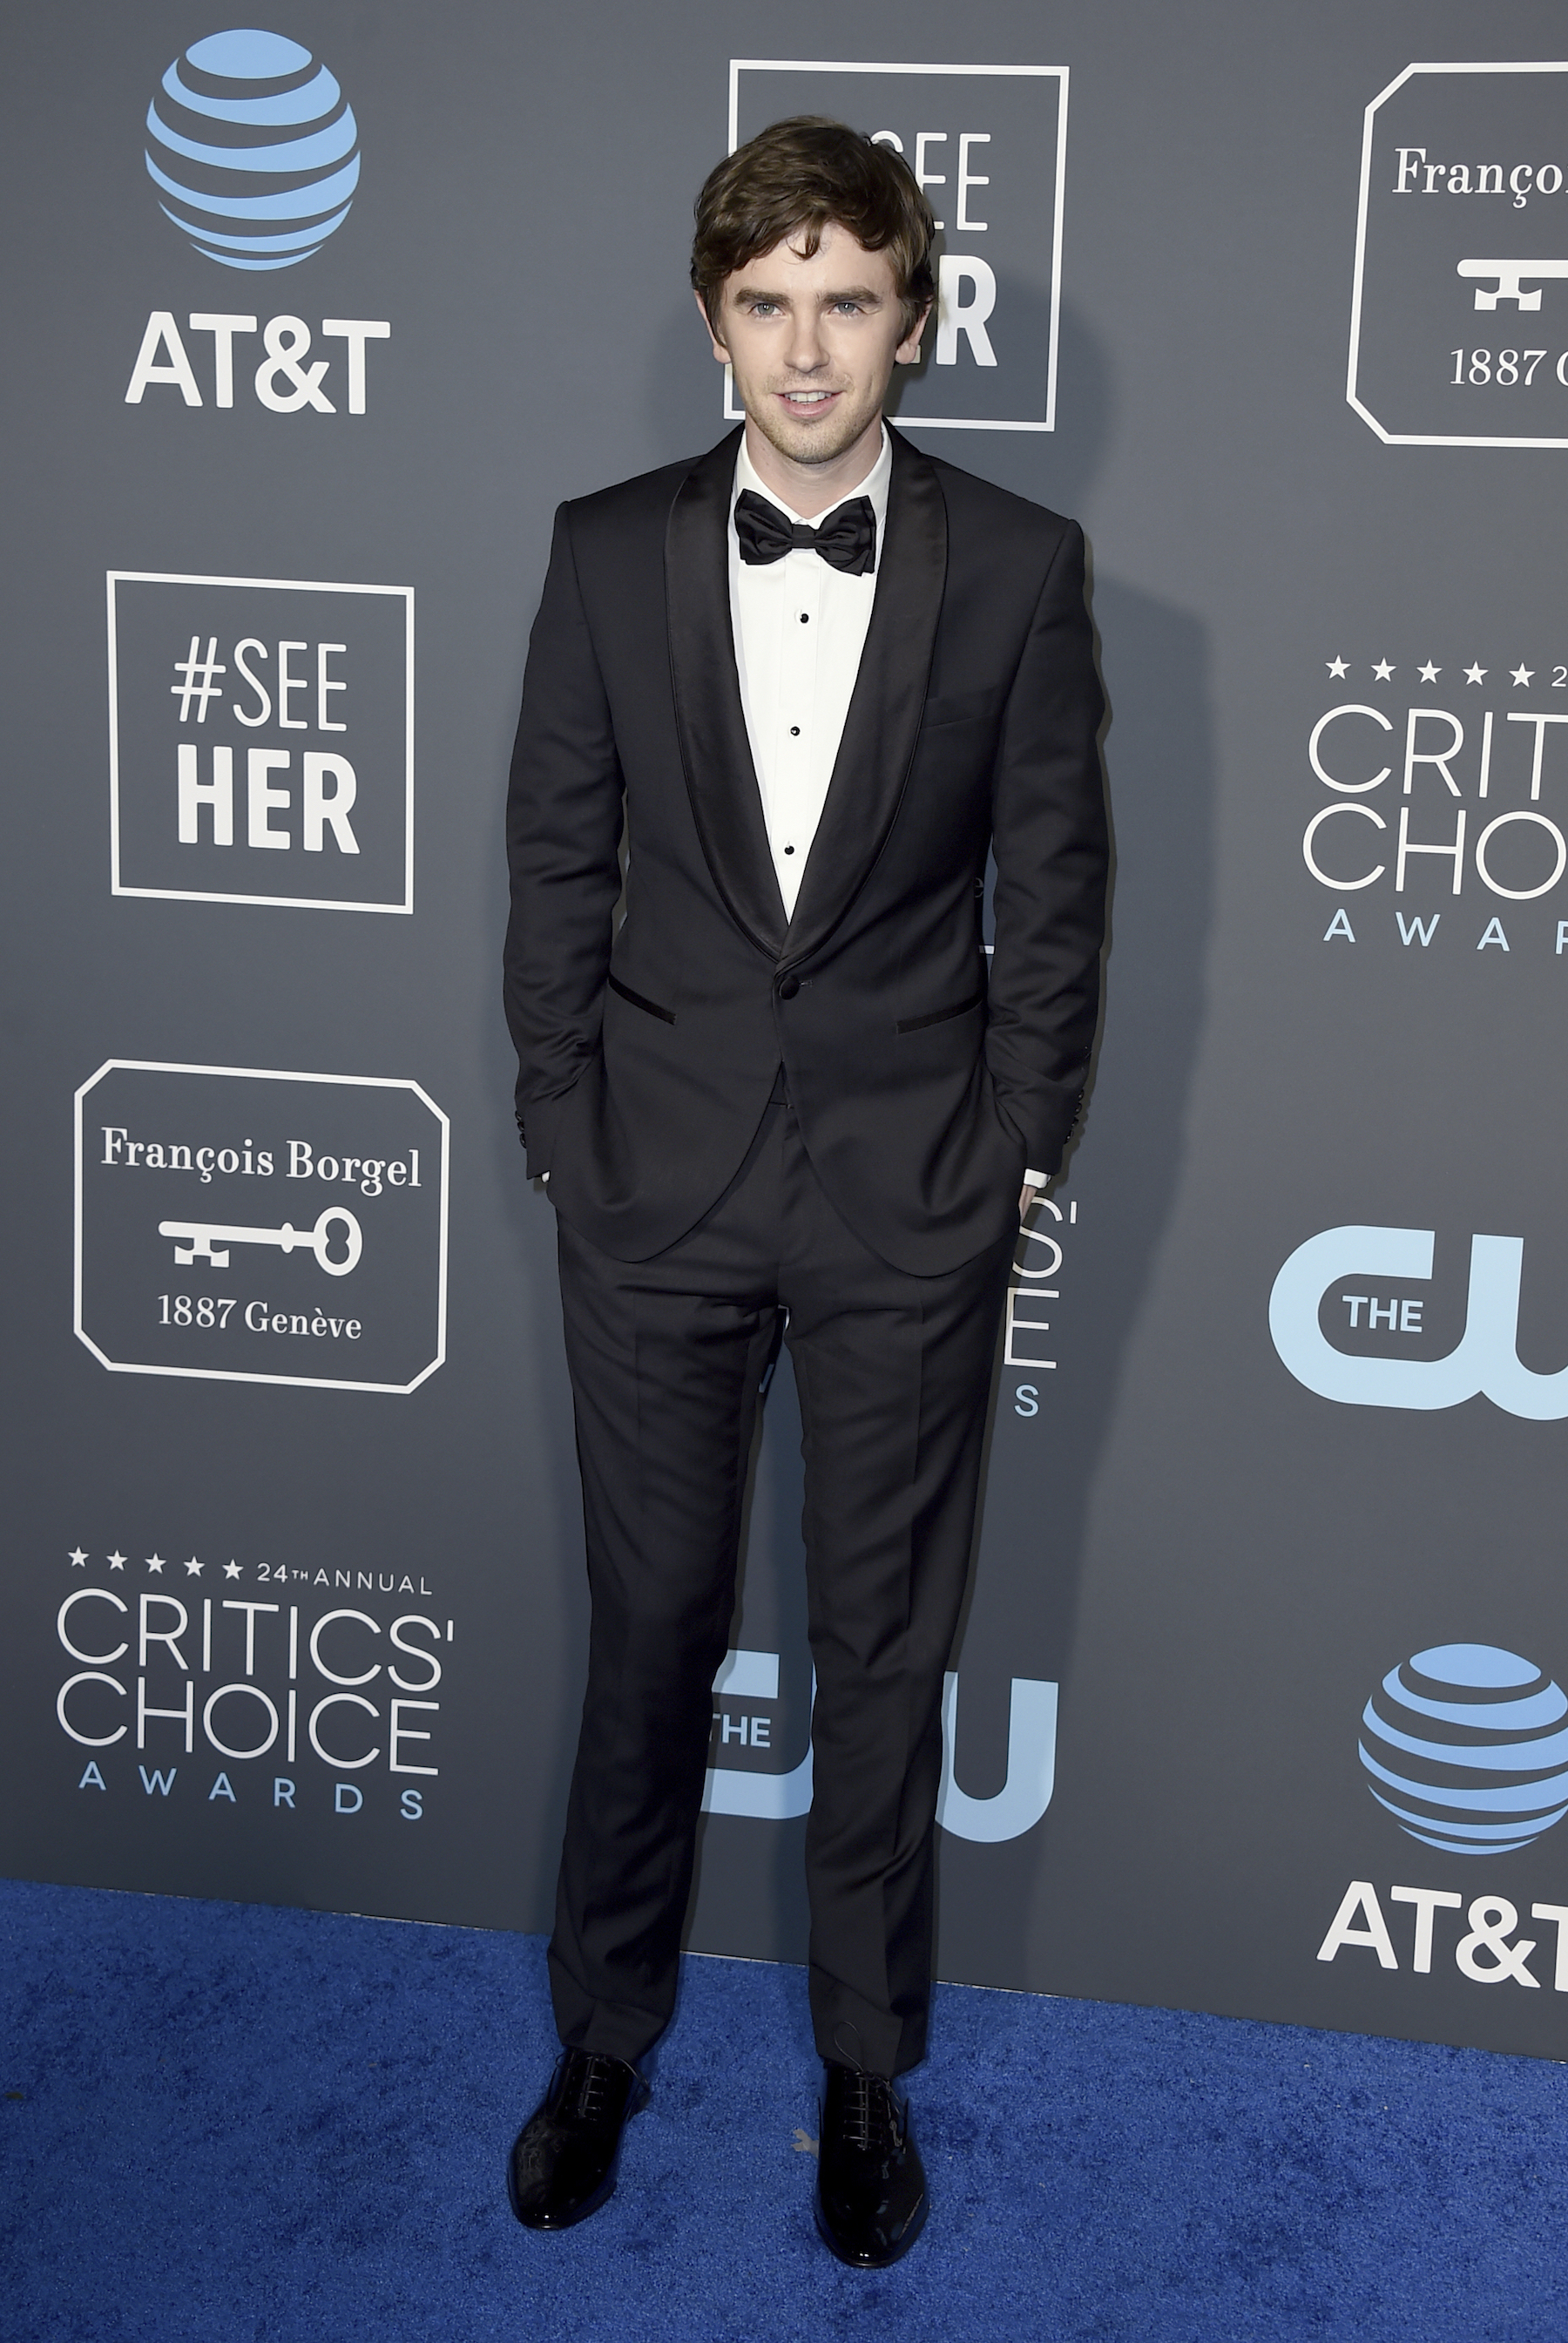 <div class='meta'><div class='origin-logo' data-origin='AP'></div><span class='caption-text' data-credit='Jordan Strauss/Invision/AP'>Freddie Highmore arrives at the 24th annual Critics' Choice Awards on Sunday, Jan. 13, 2019, at the Barker Hangar in Santa Monica, Calif.</span></div>